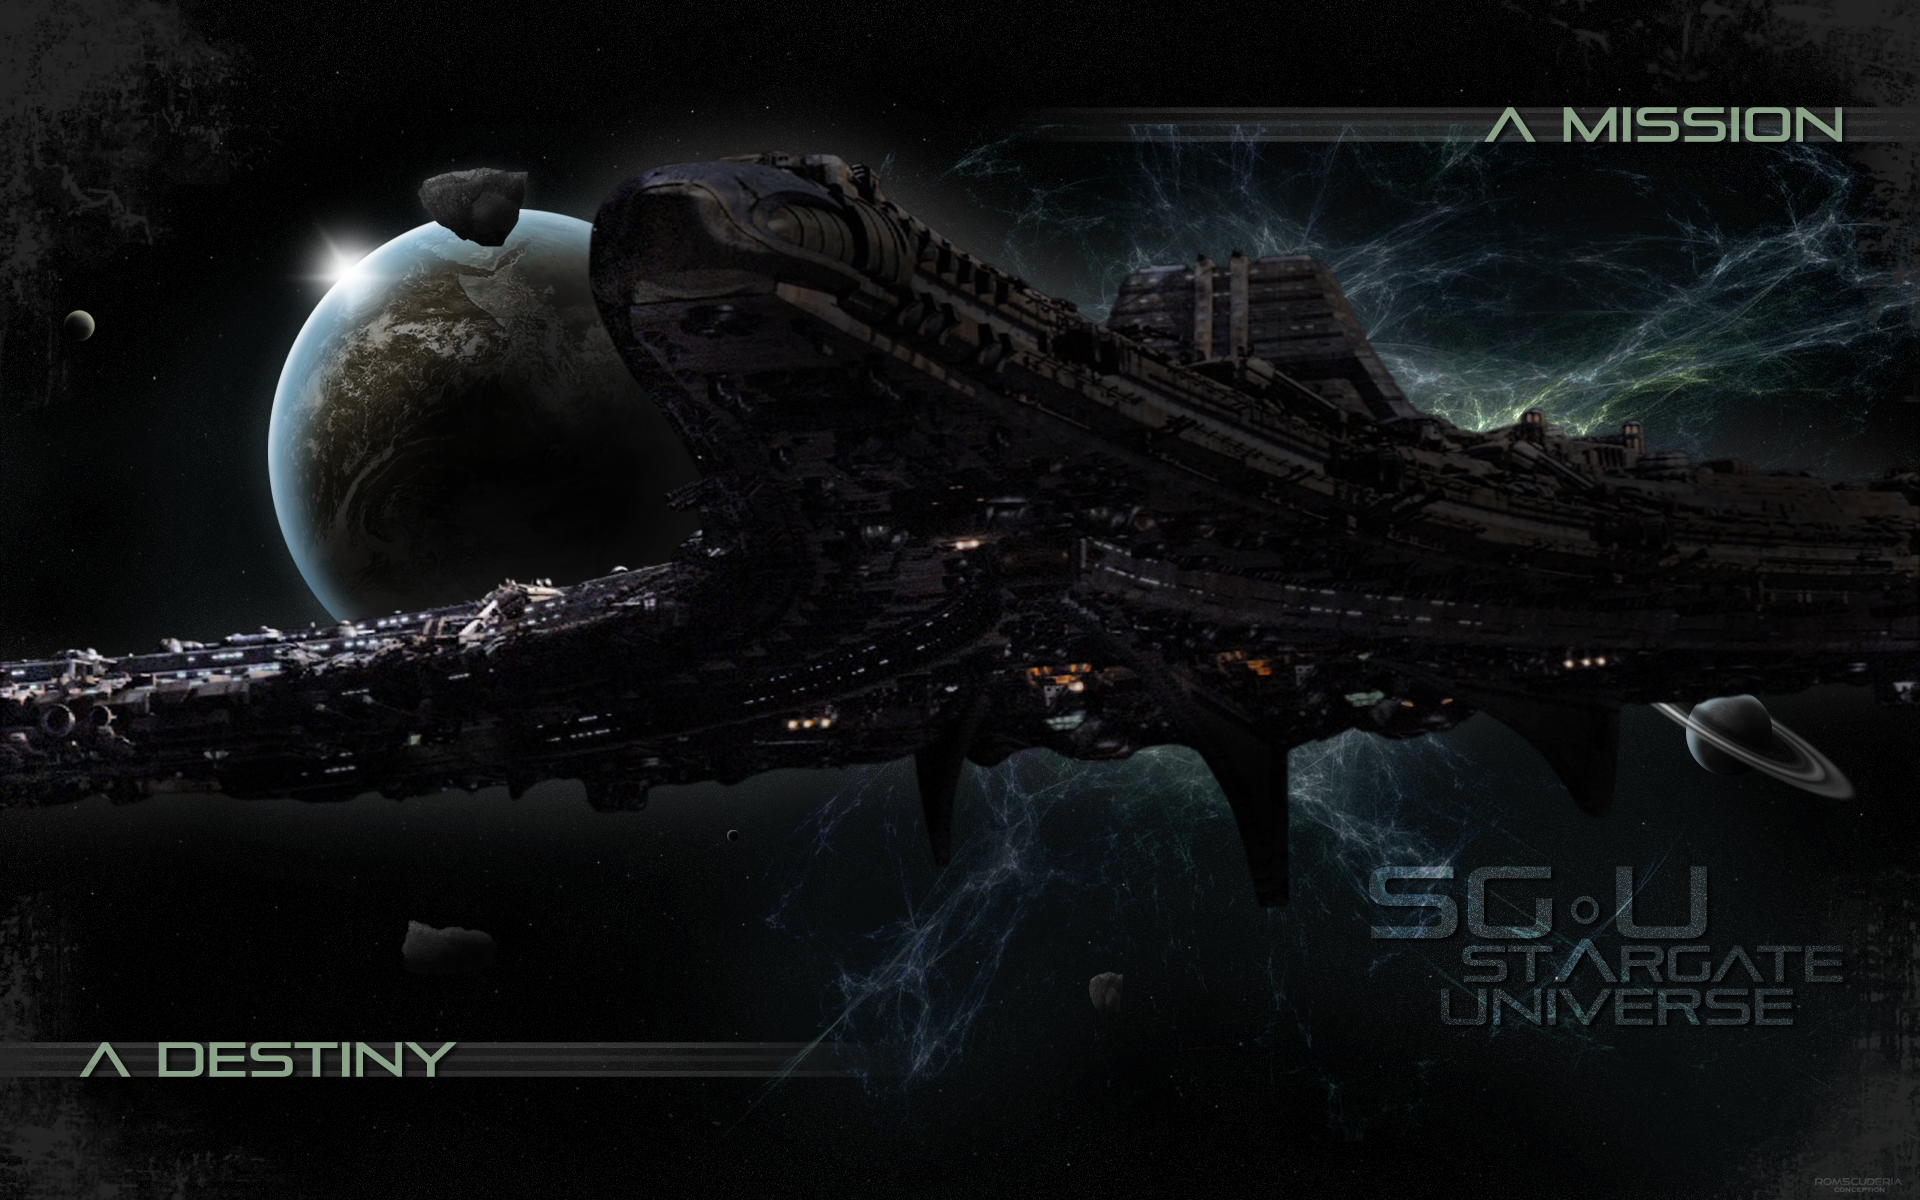 stargate wallpaper universe space - photo #1